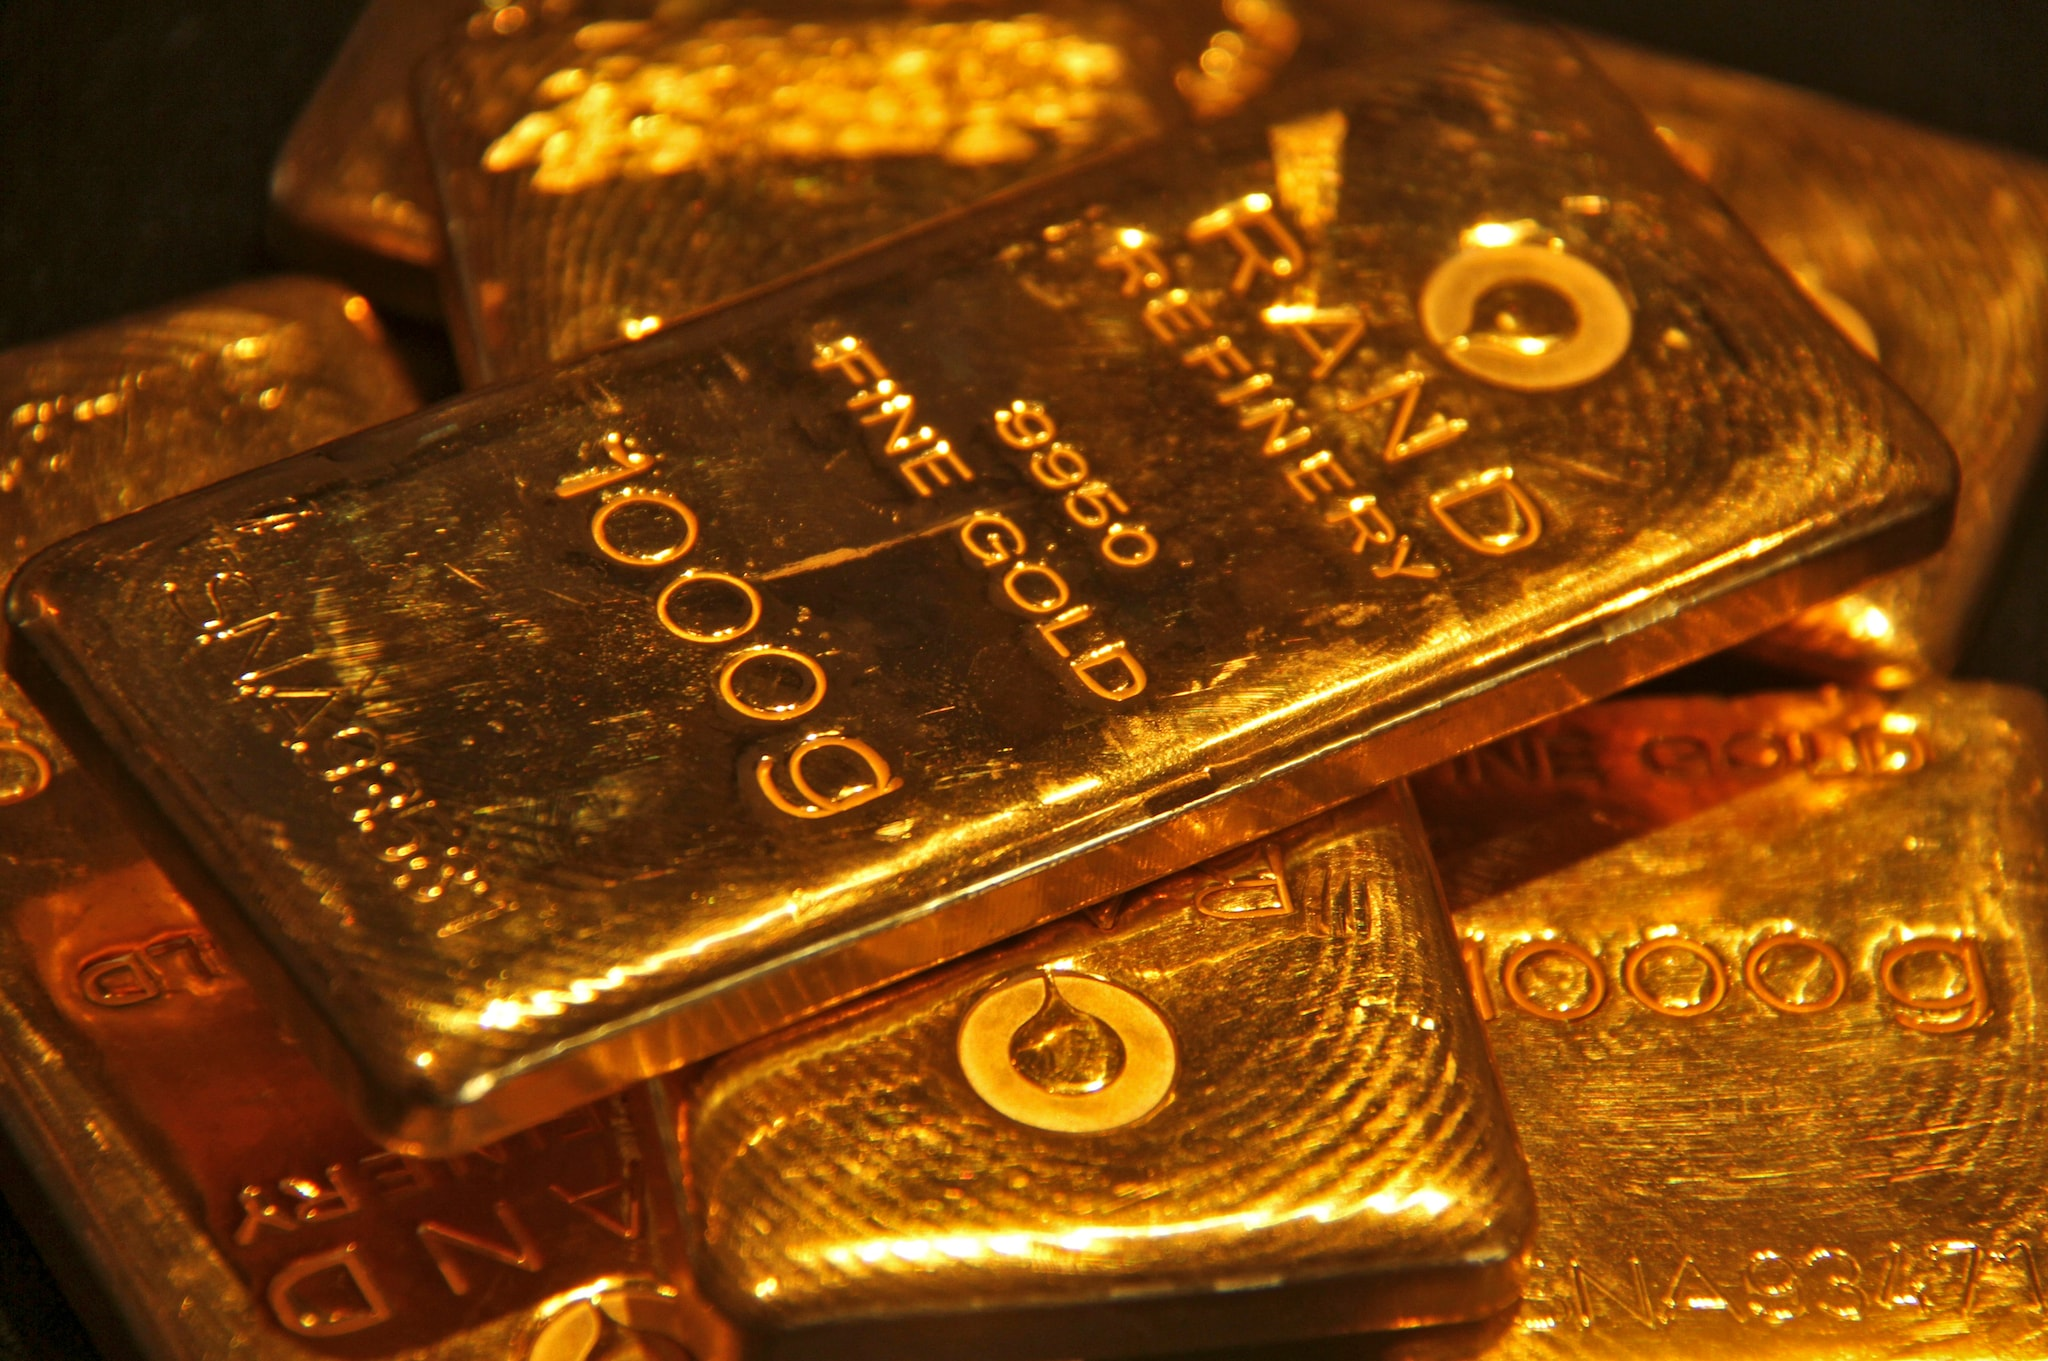 9. US Trade Benefits Withdrawal Impact: The US government's decision to<br />withdraw trade benefits under the Generalised System of Preferences (GSP) is likely to impact the gems and jewellery exports the most, the report said. The gems and jewellery sector is already under pressure on account of stringent lending rules and working-<br />capital crunch. India tops the list of exporters to the US in this category, with more than 15 per cent share, the rating agency Crisil said. (Image: Reuters)